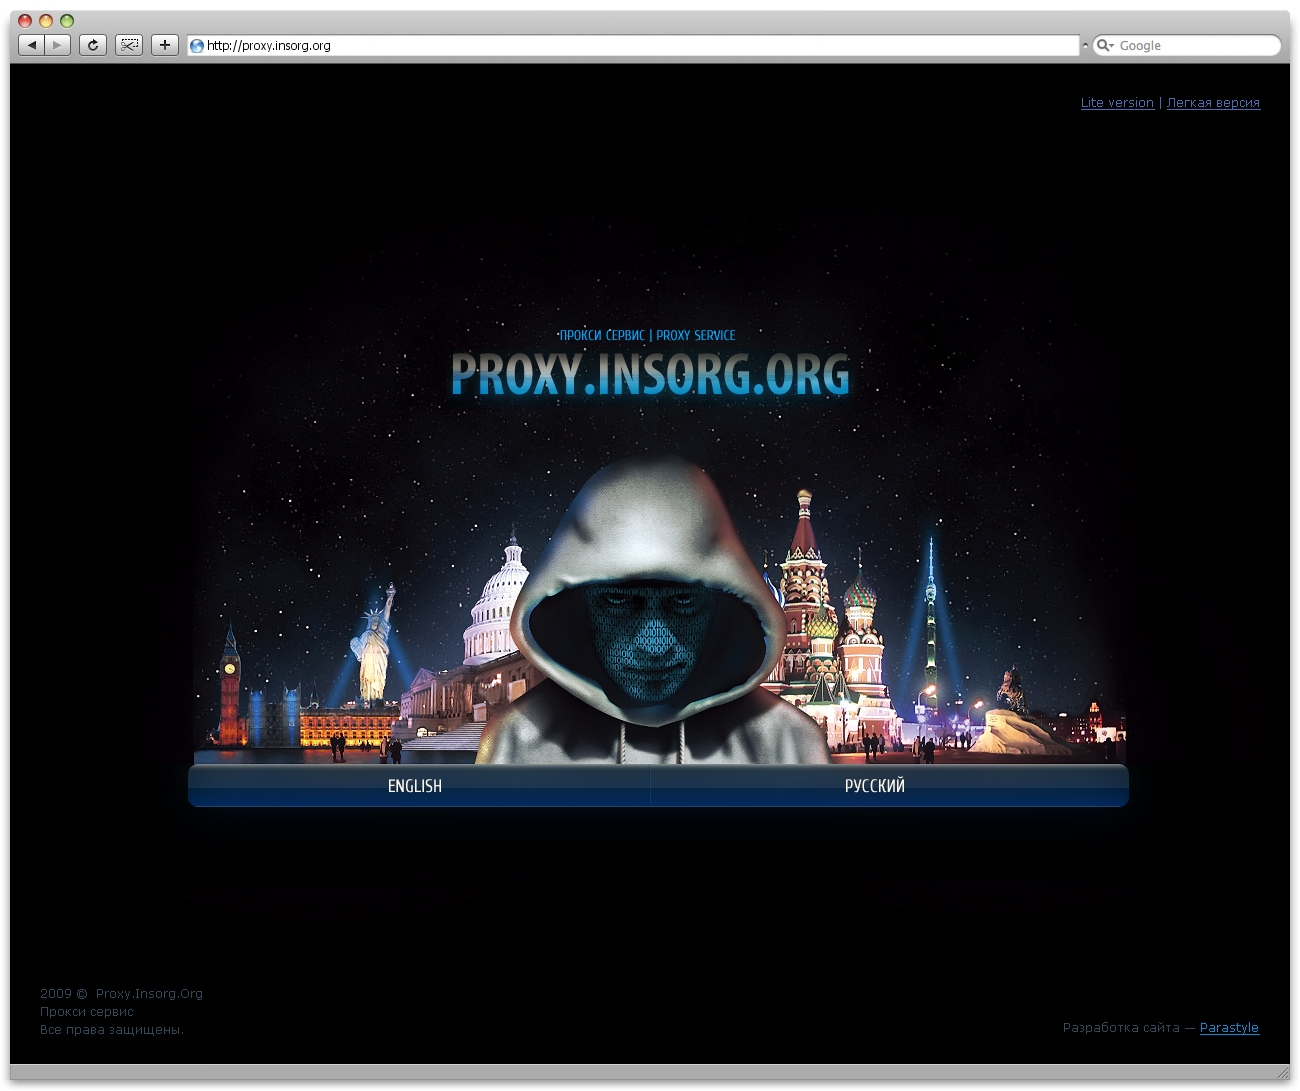 Proxy.insorg.org